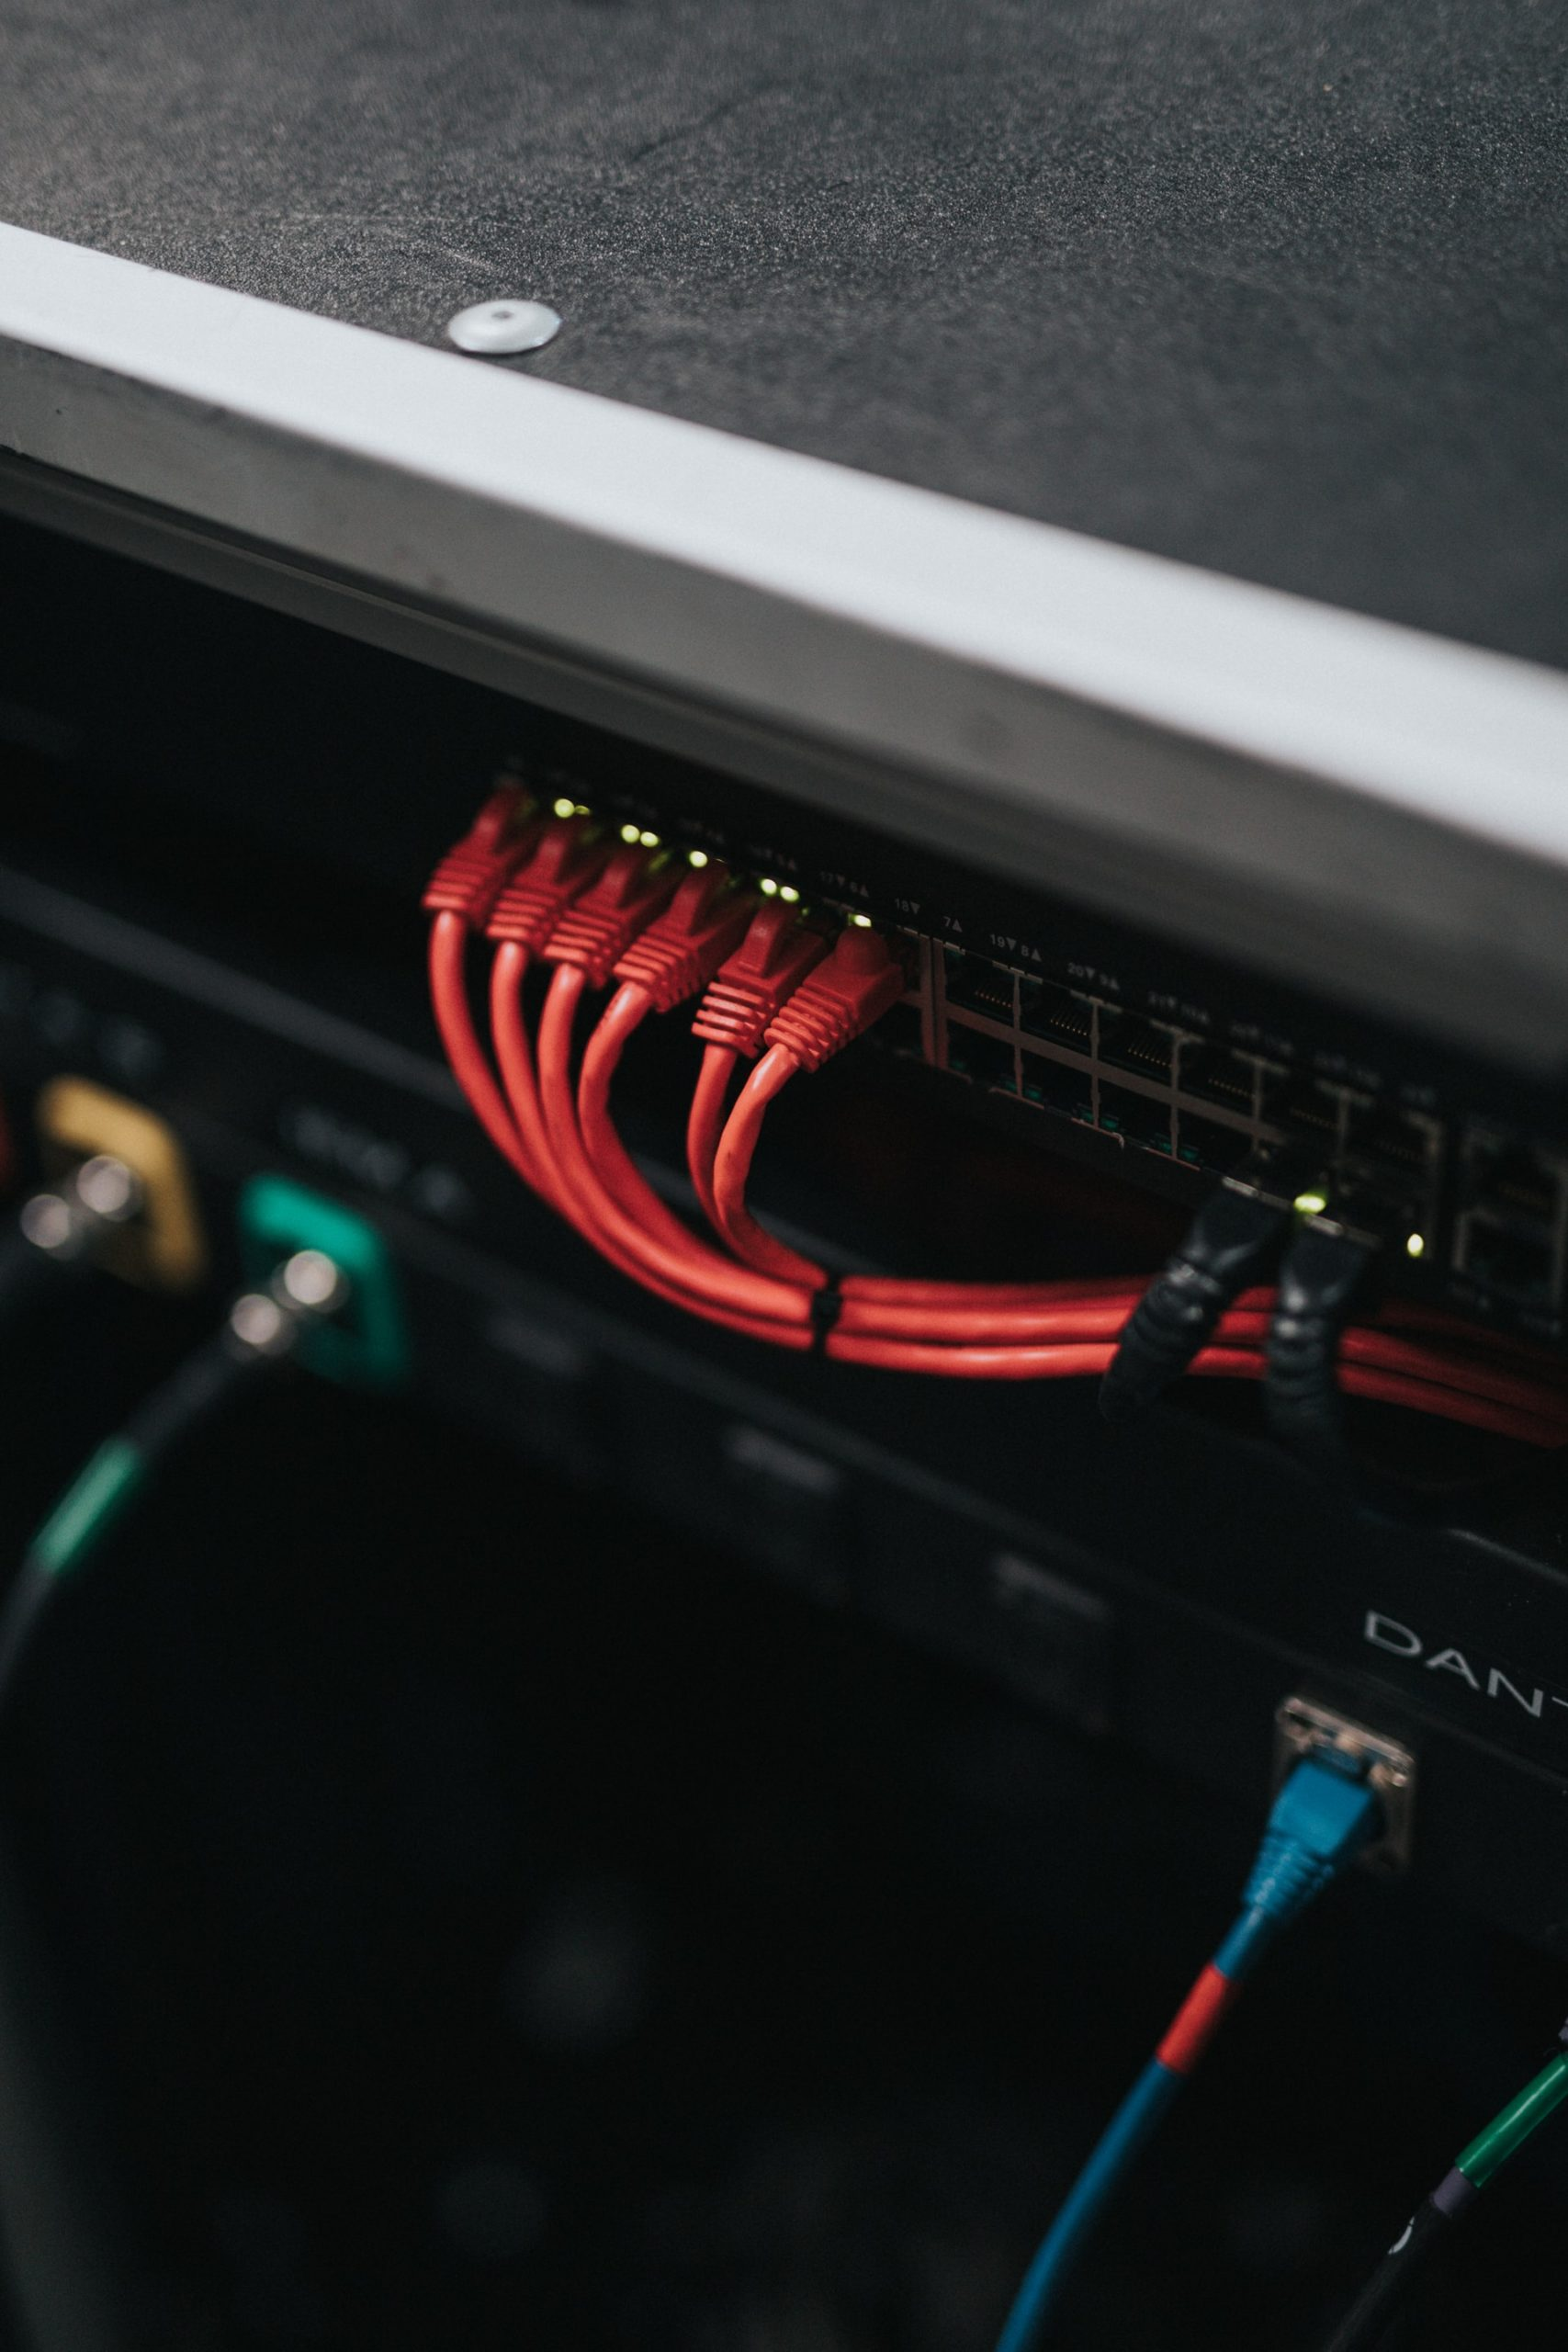 Best US VPS 2021 Article Image